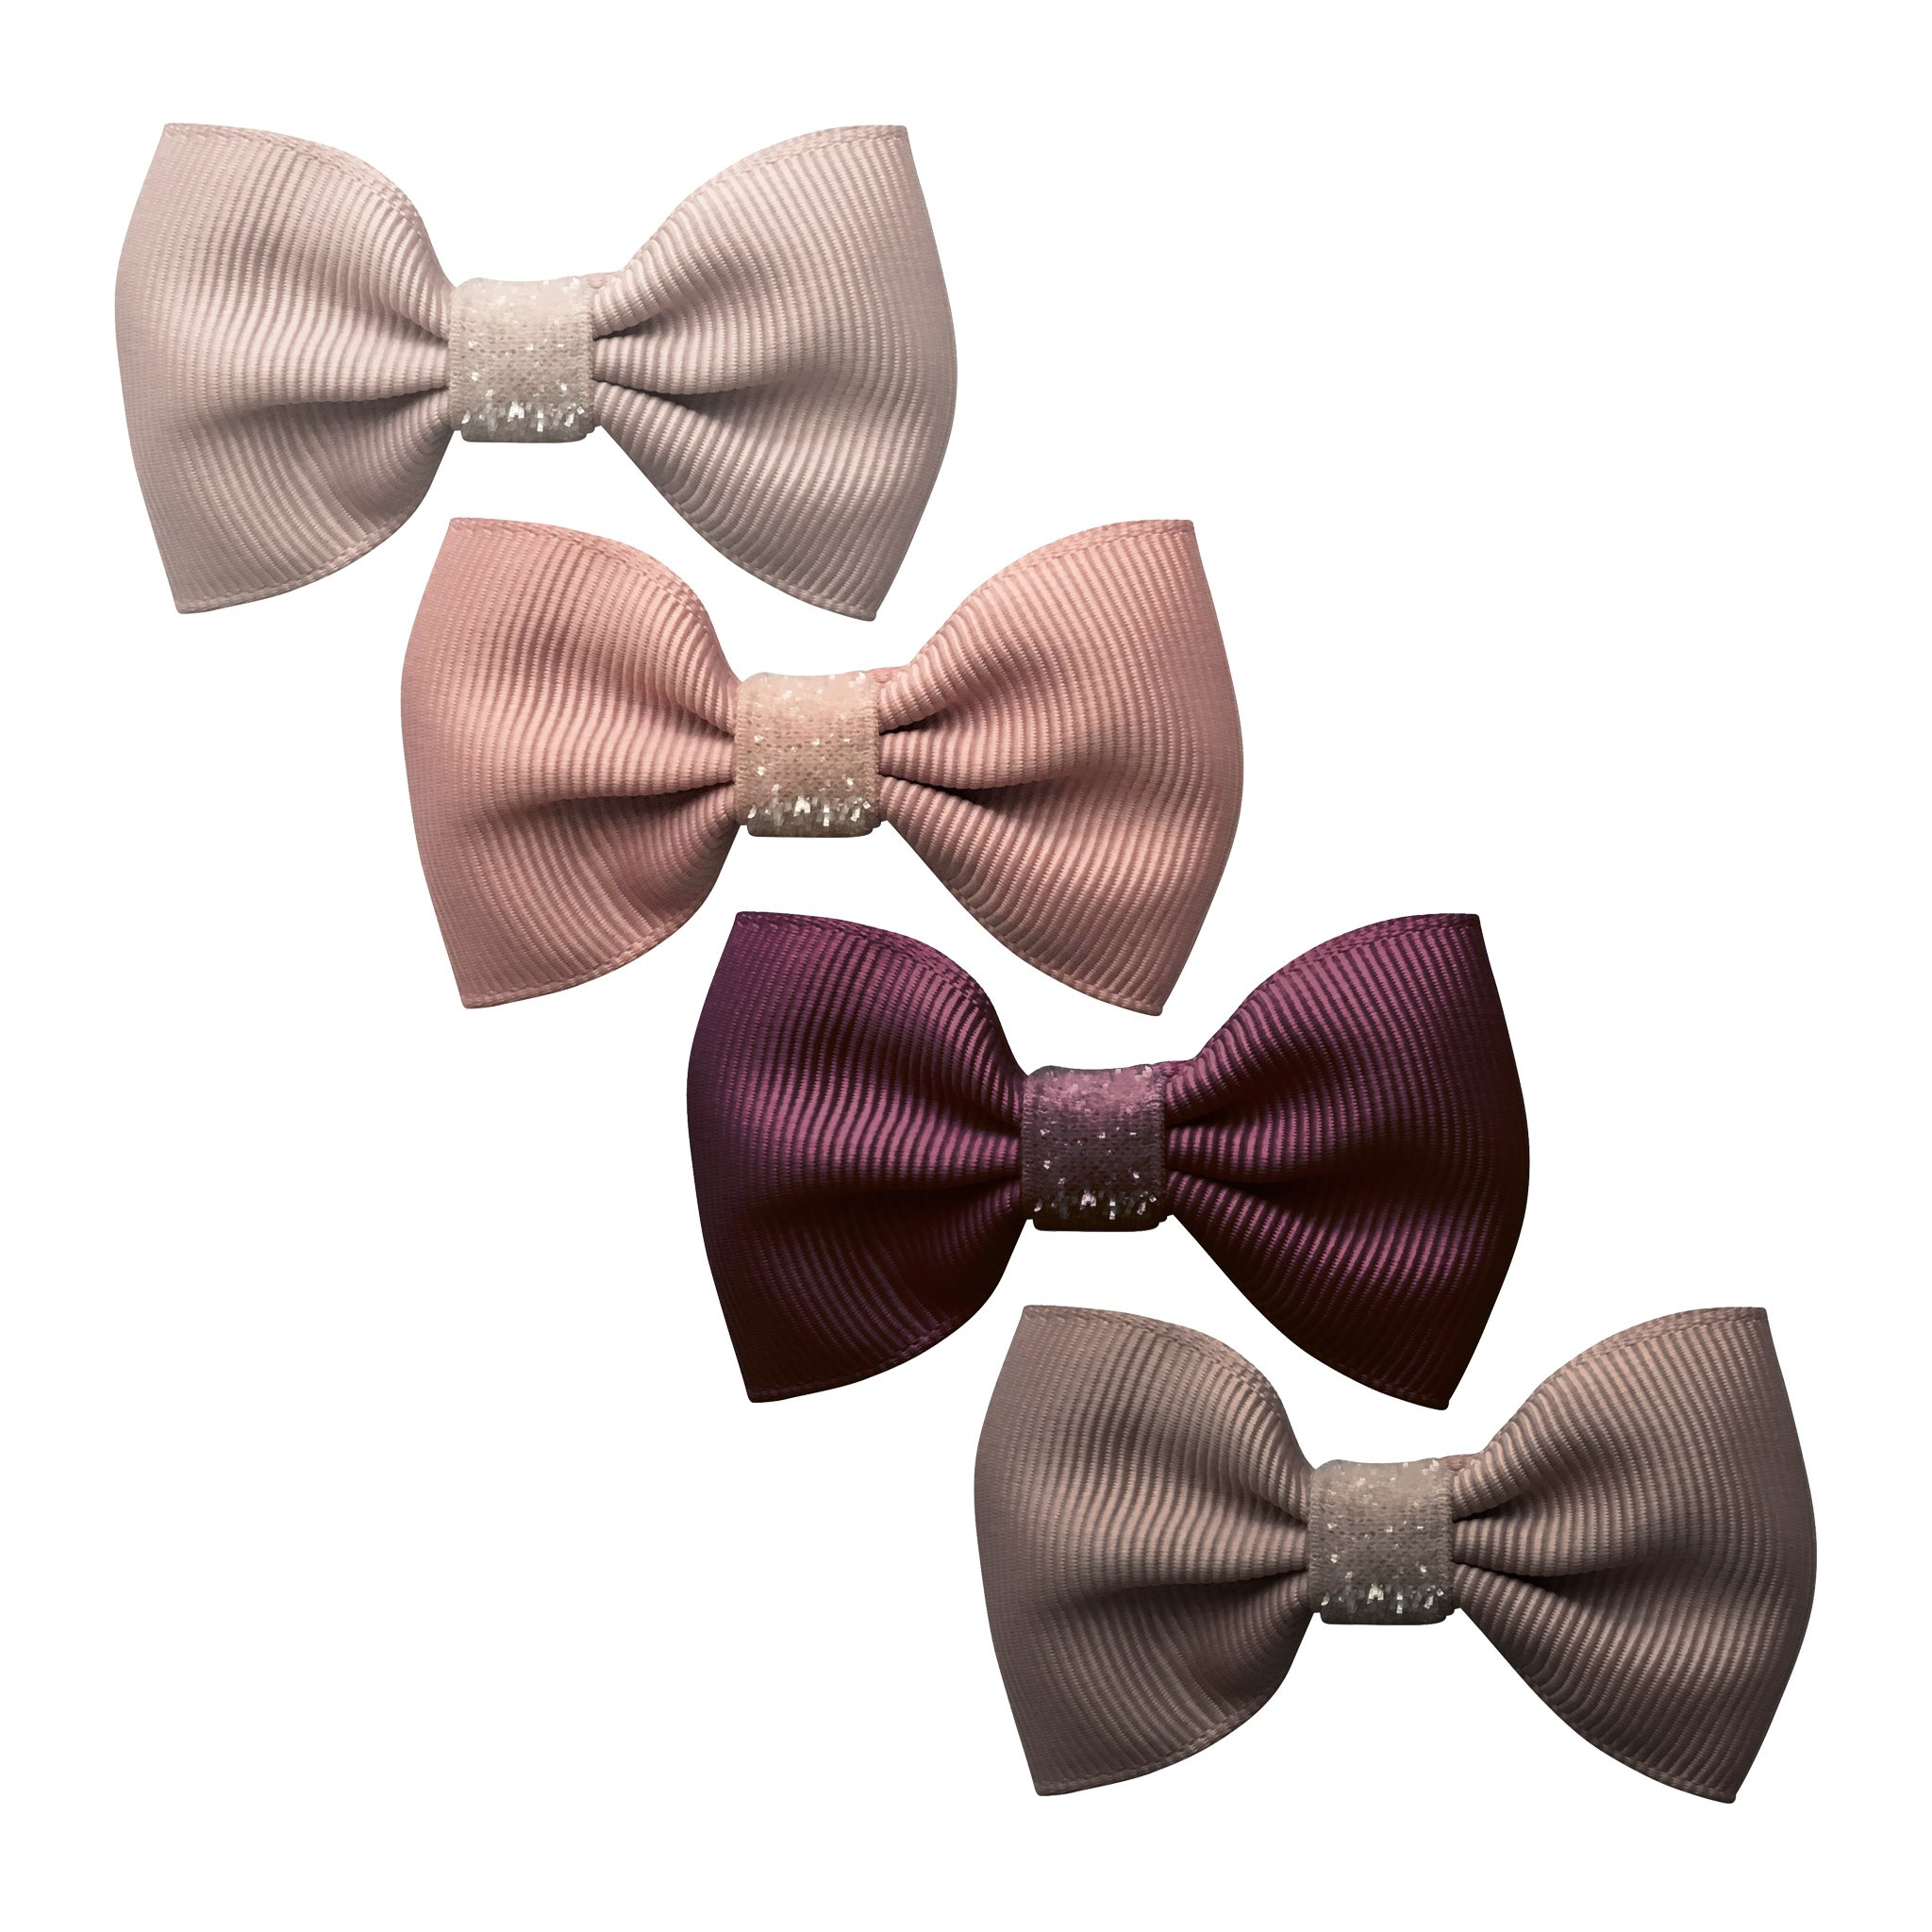 Image of Milledeux® New York Gift set - 4 Small bowtie bows - alligator clip - Colored Glitter